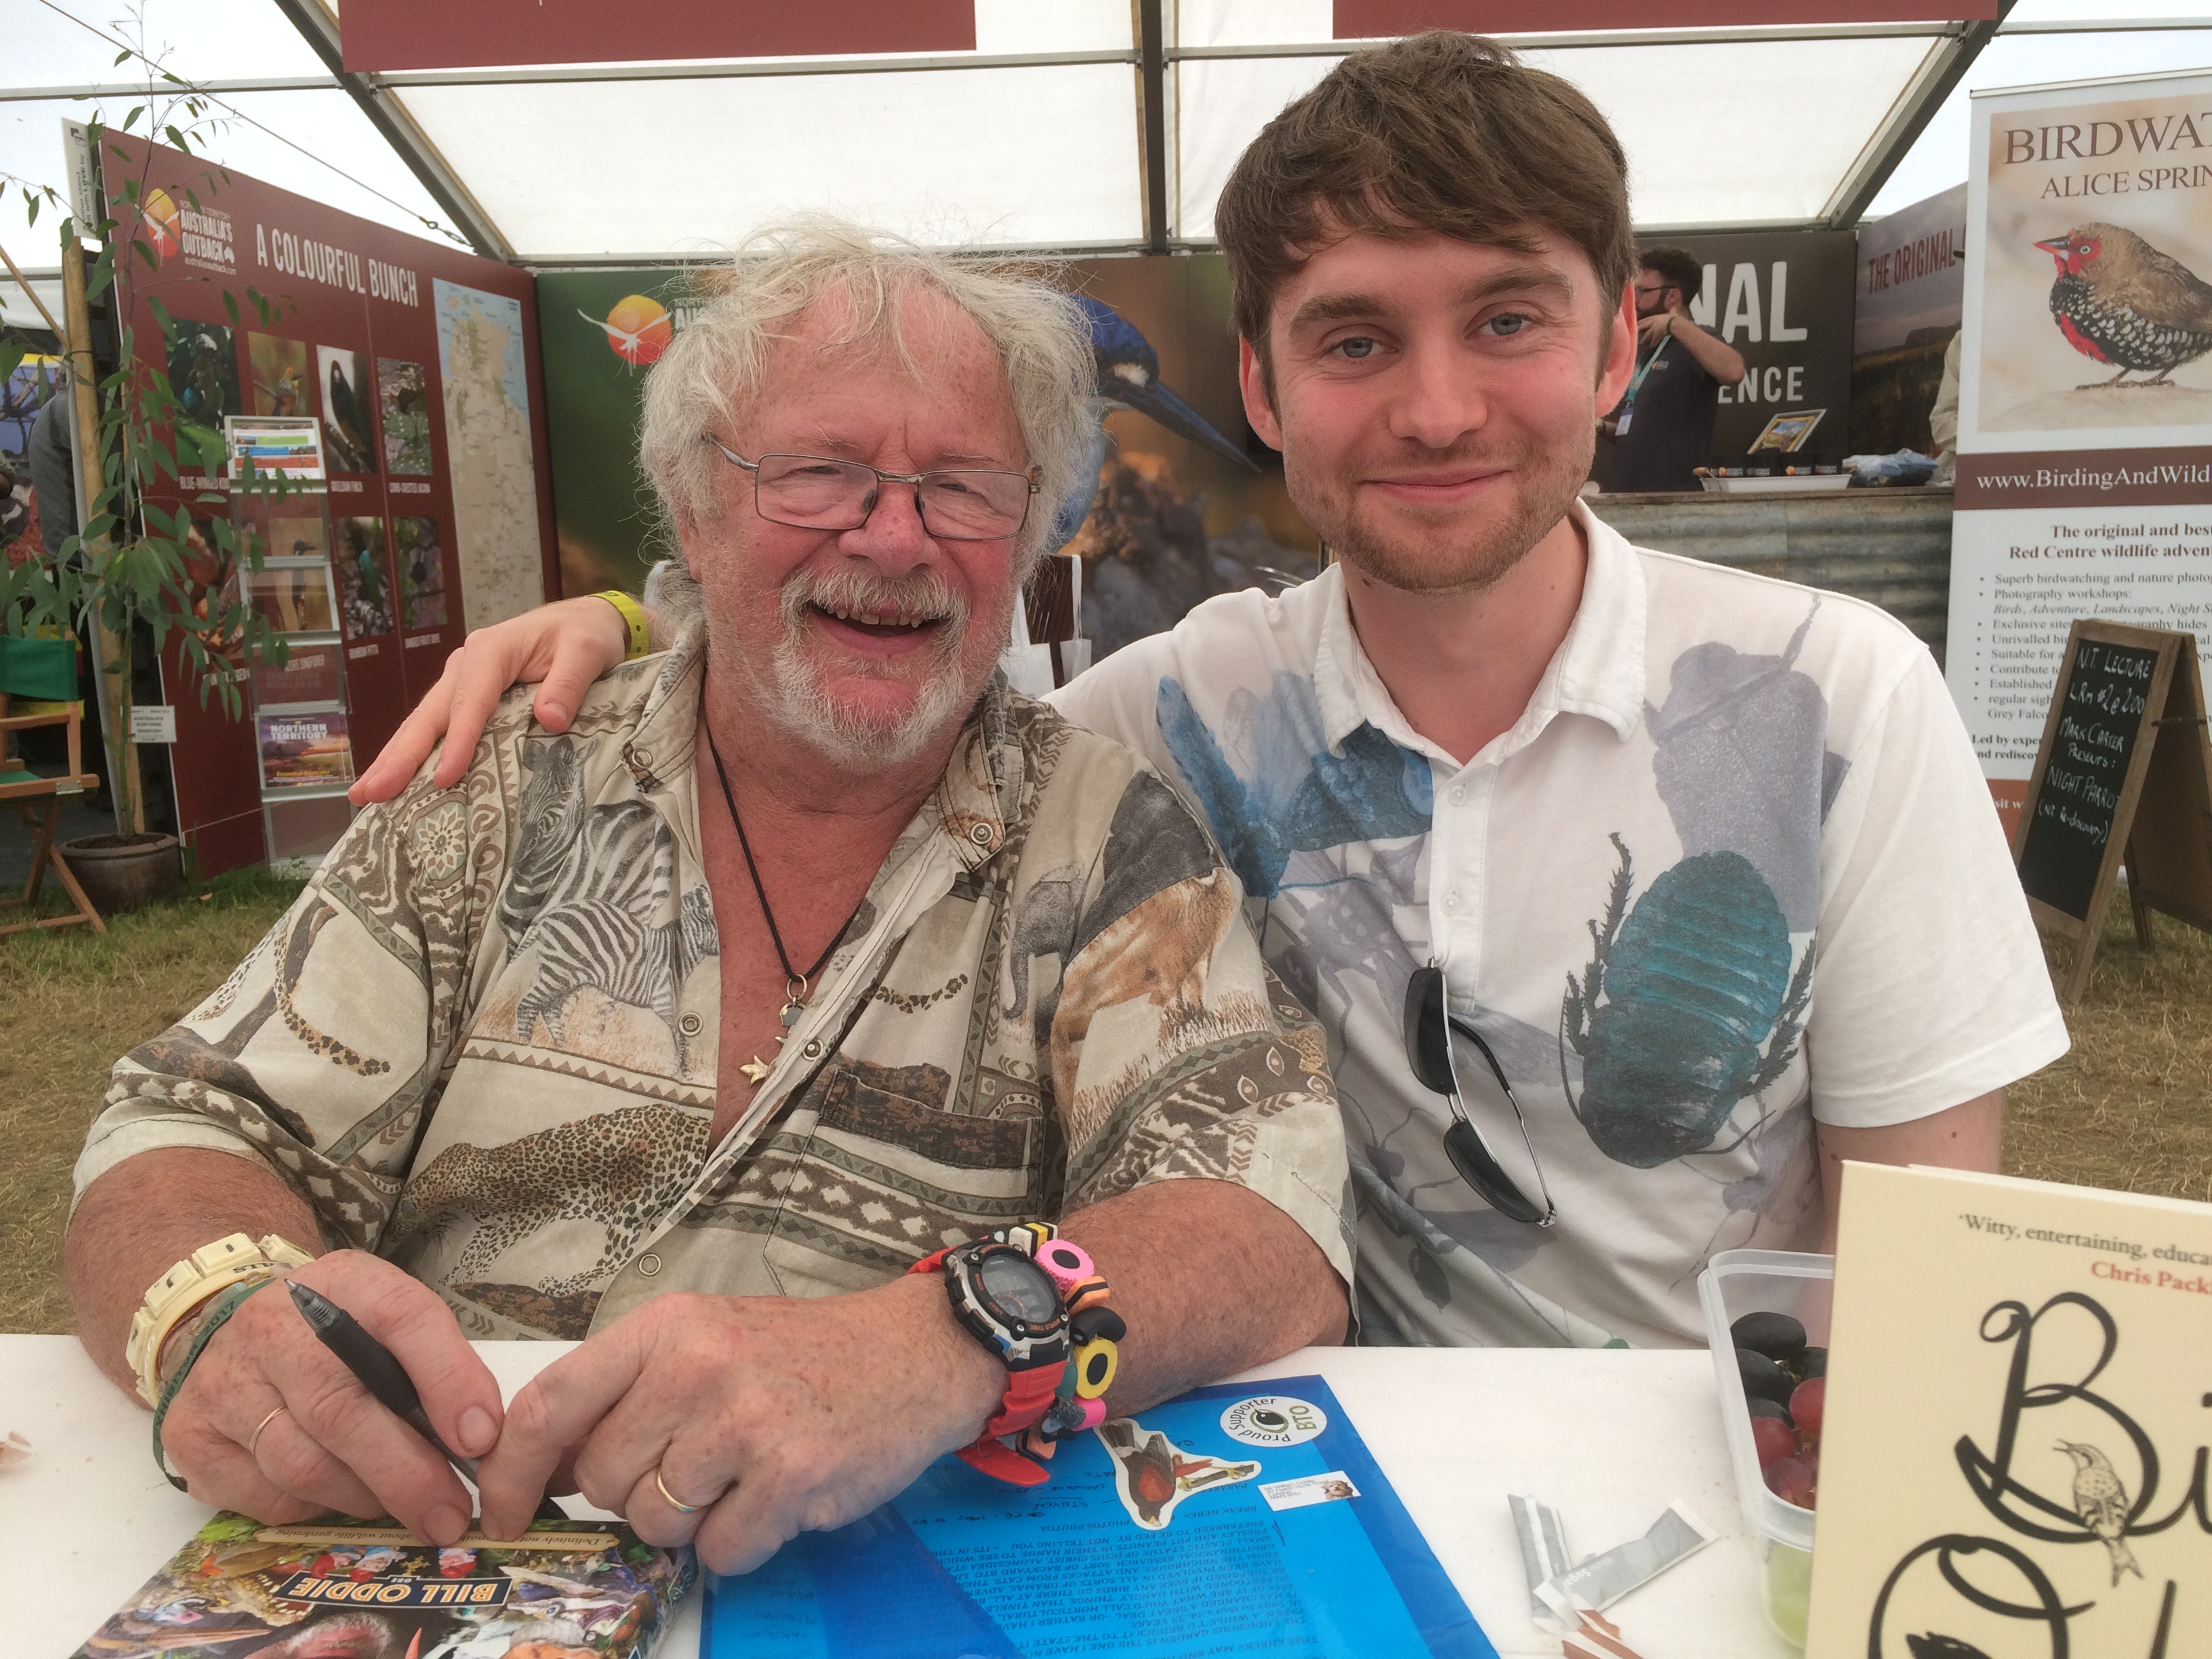 Bill Oddie and Adam Canning Birdfair 2017